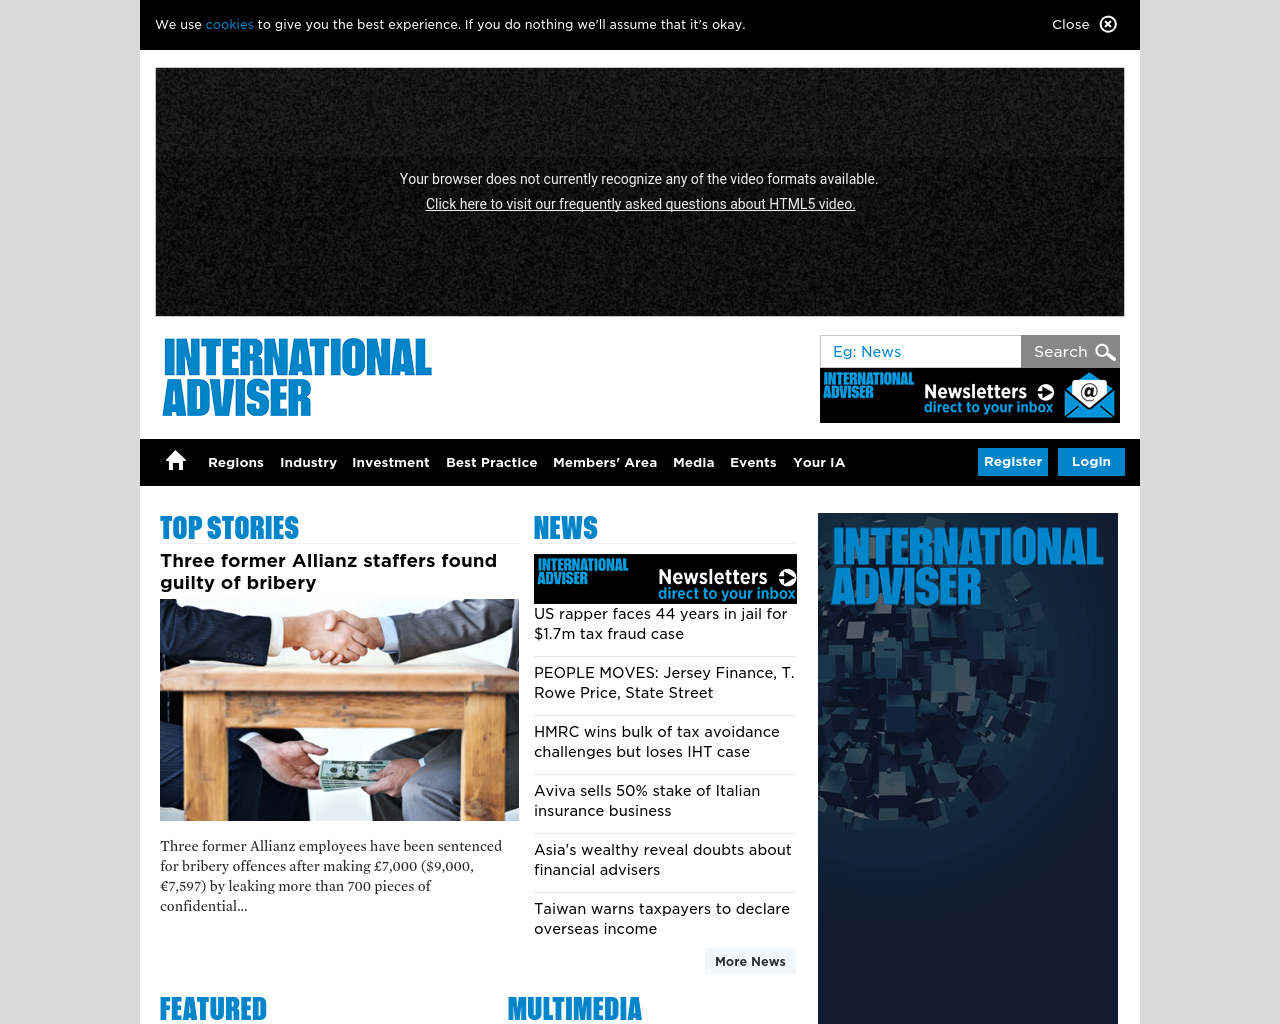 International-Adviser-Advertising-Reviews-Pricing